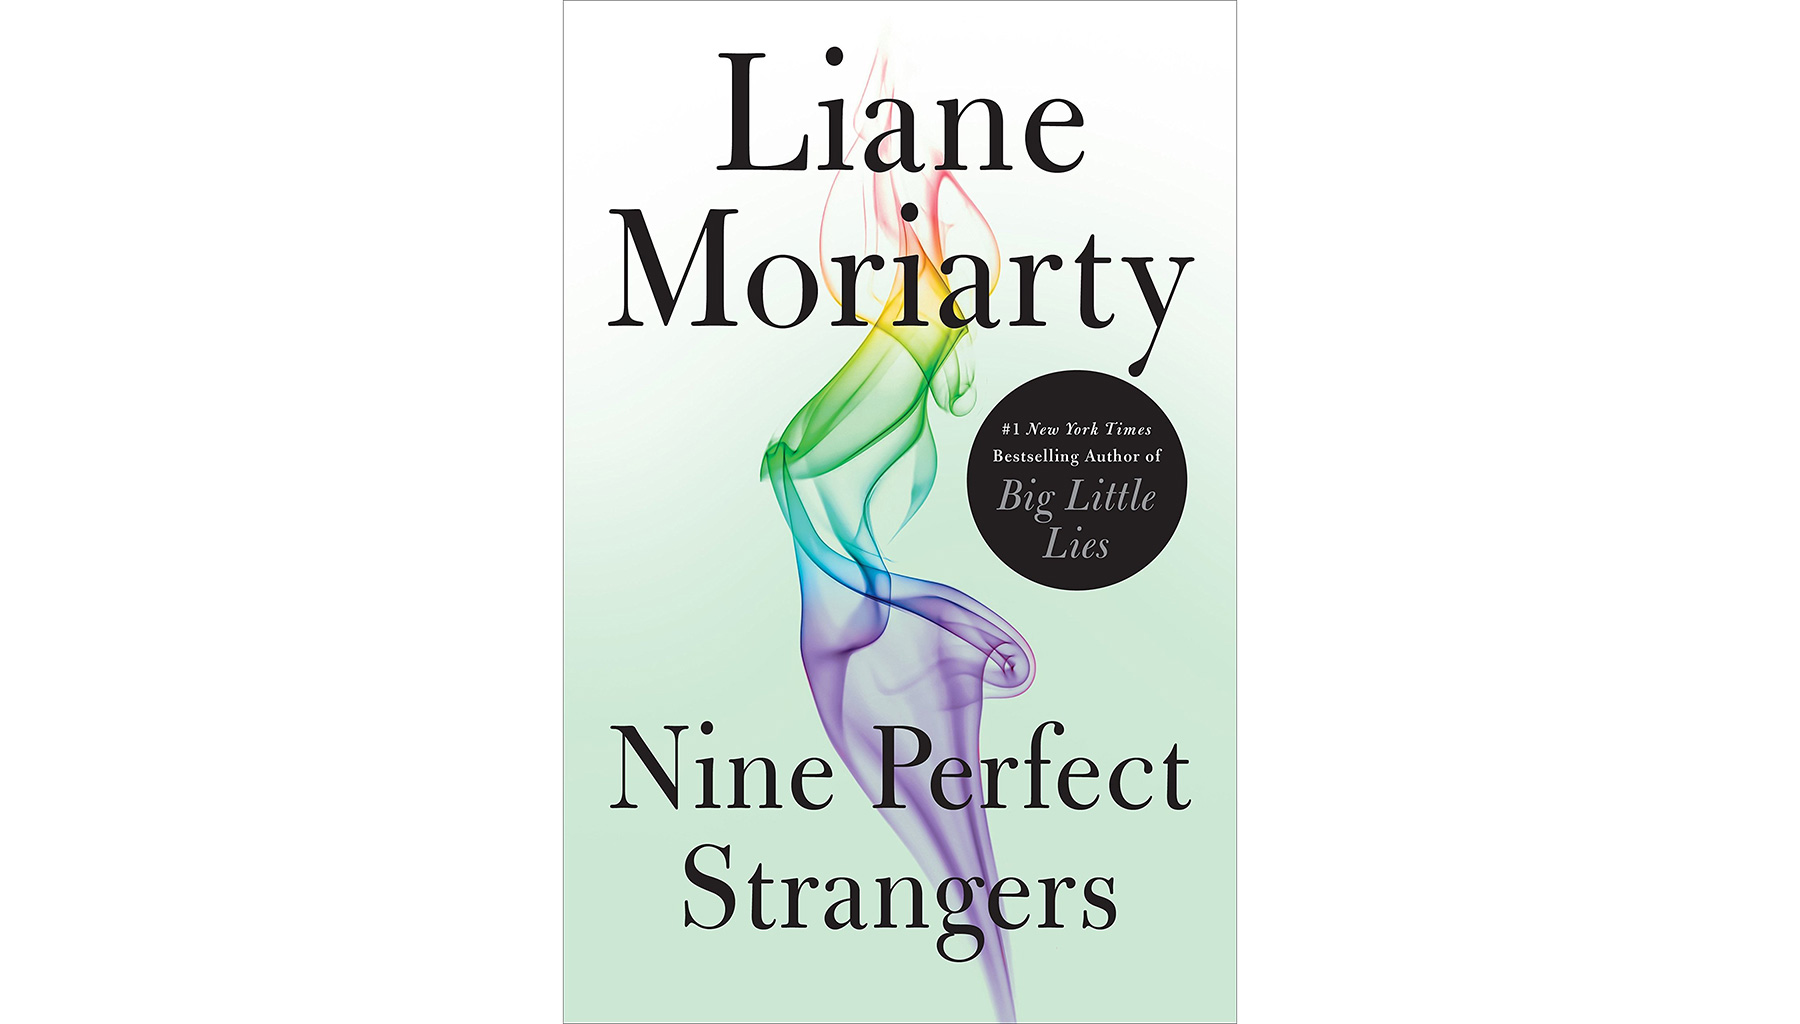 Nine Perfect Strangers, by Liane Moriarity